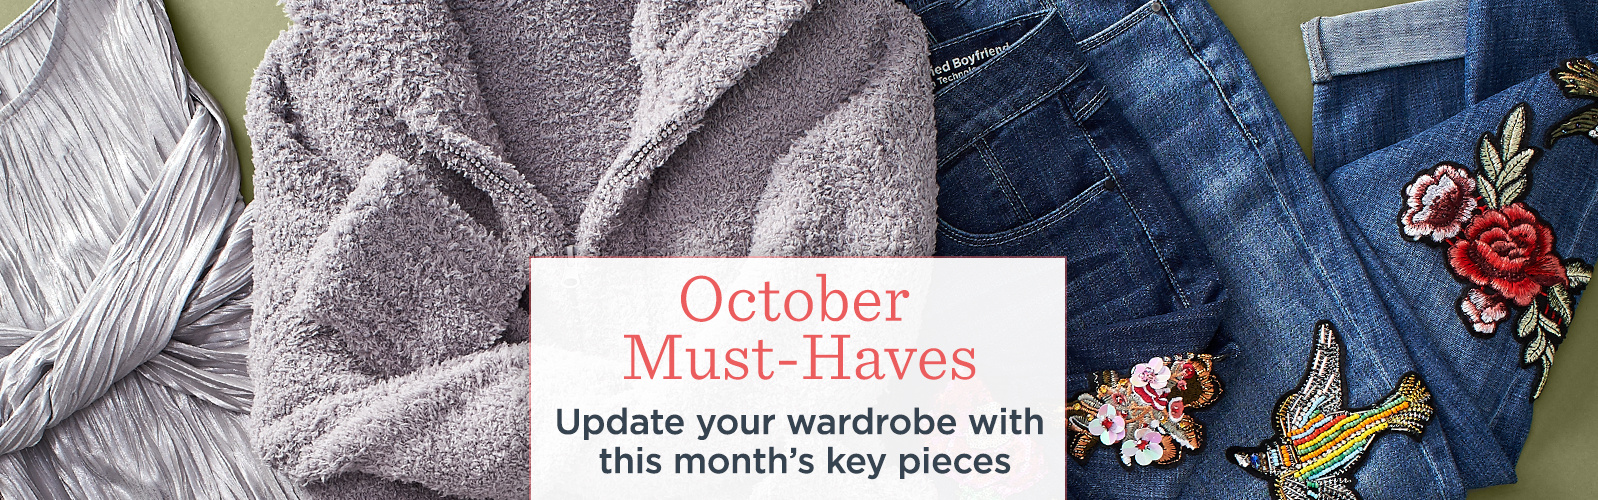 October Must-Haves  Update your wardrobe with this month's key pieces